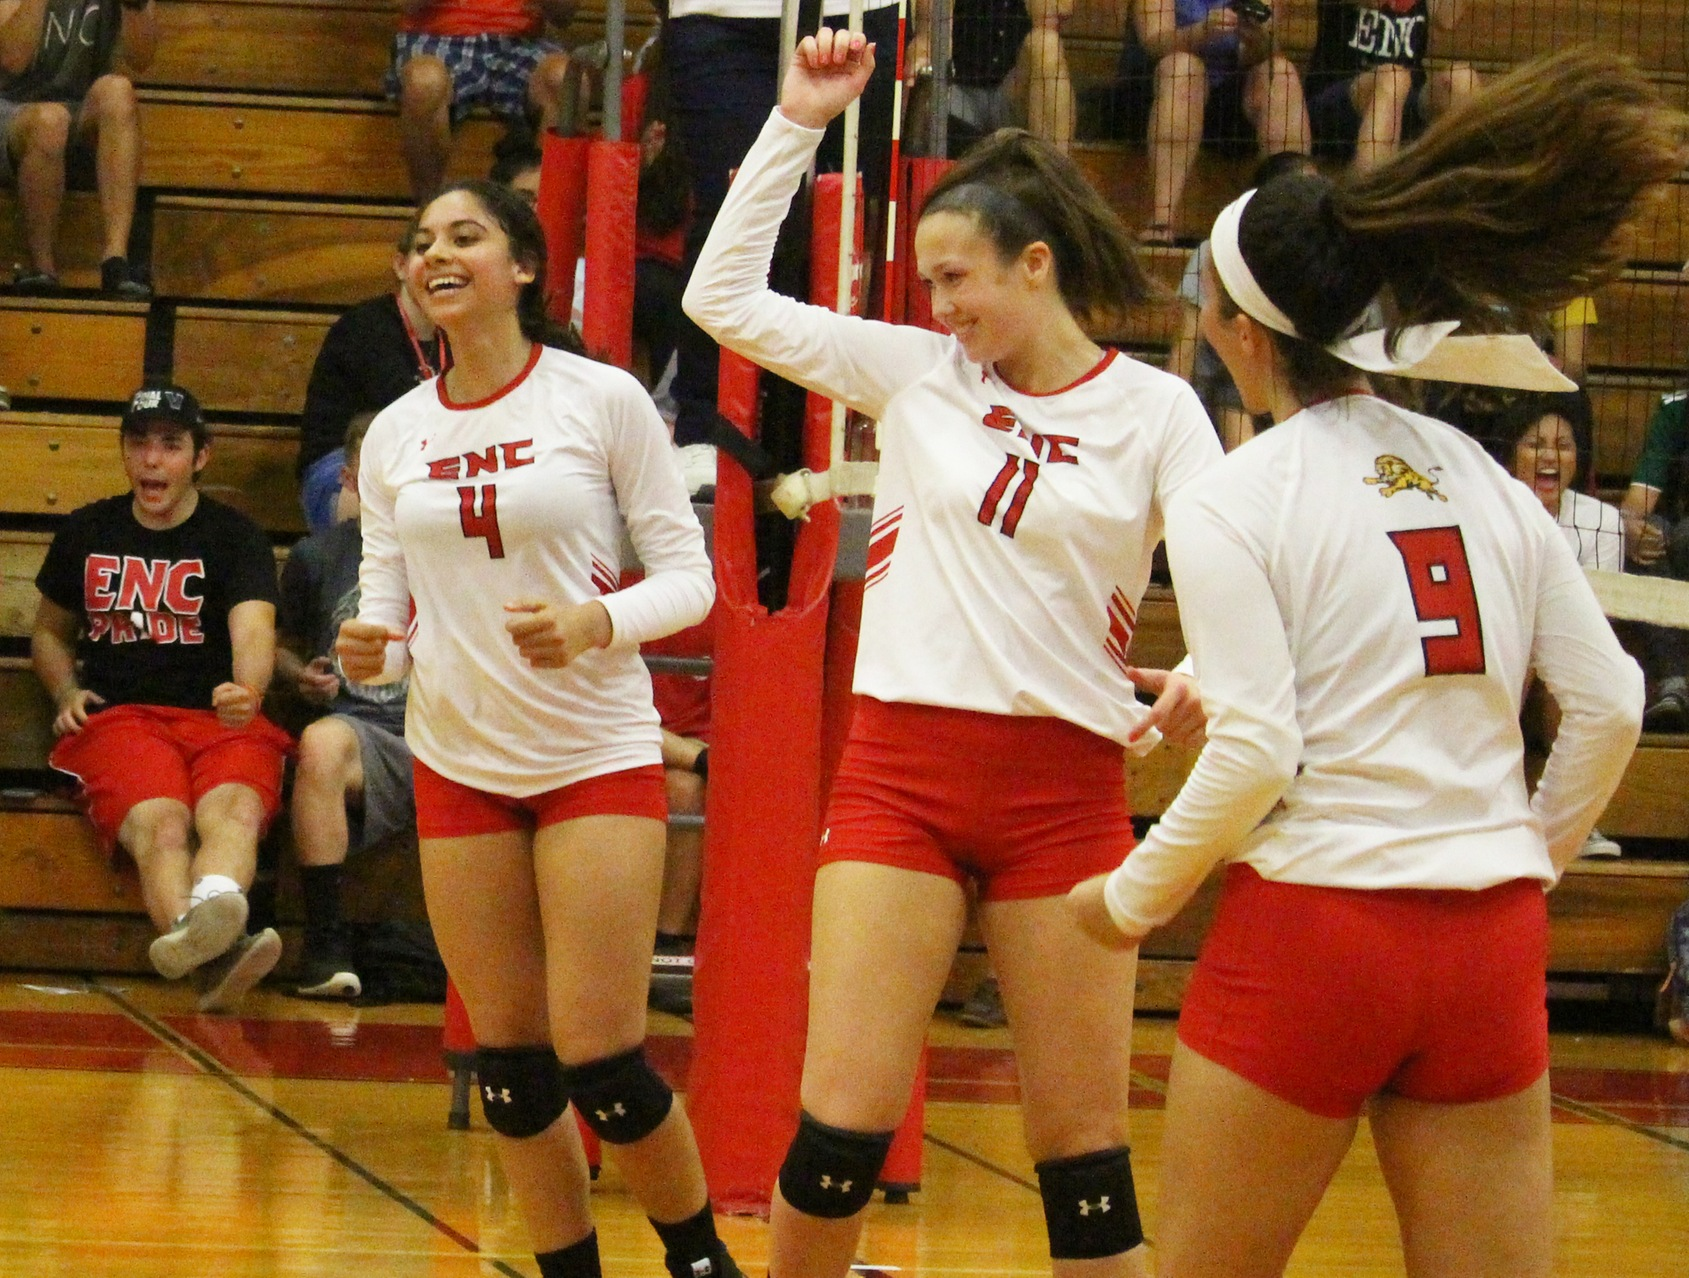 No. 1 Seed Eastern Nazarene Sweeps No. 4 New England College 3-0 to Reach NECC Championship